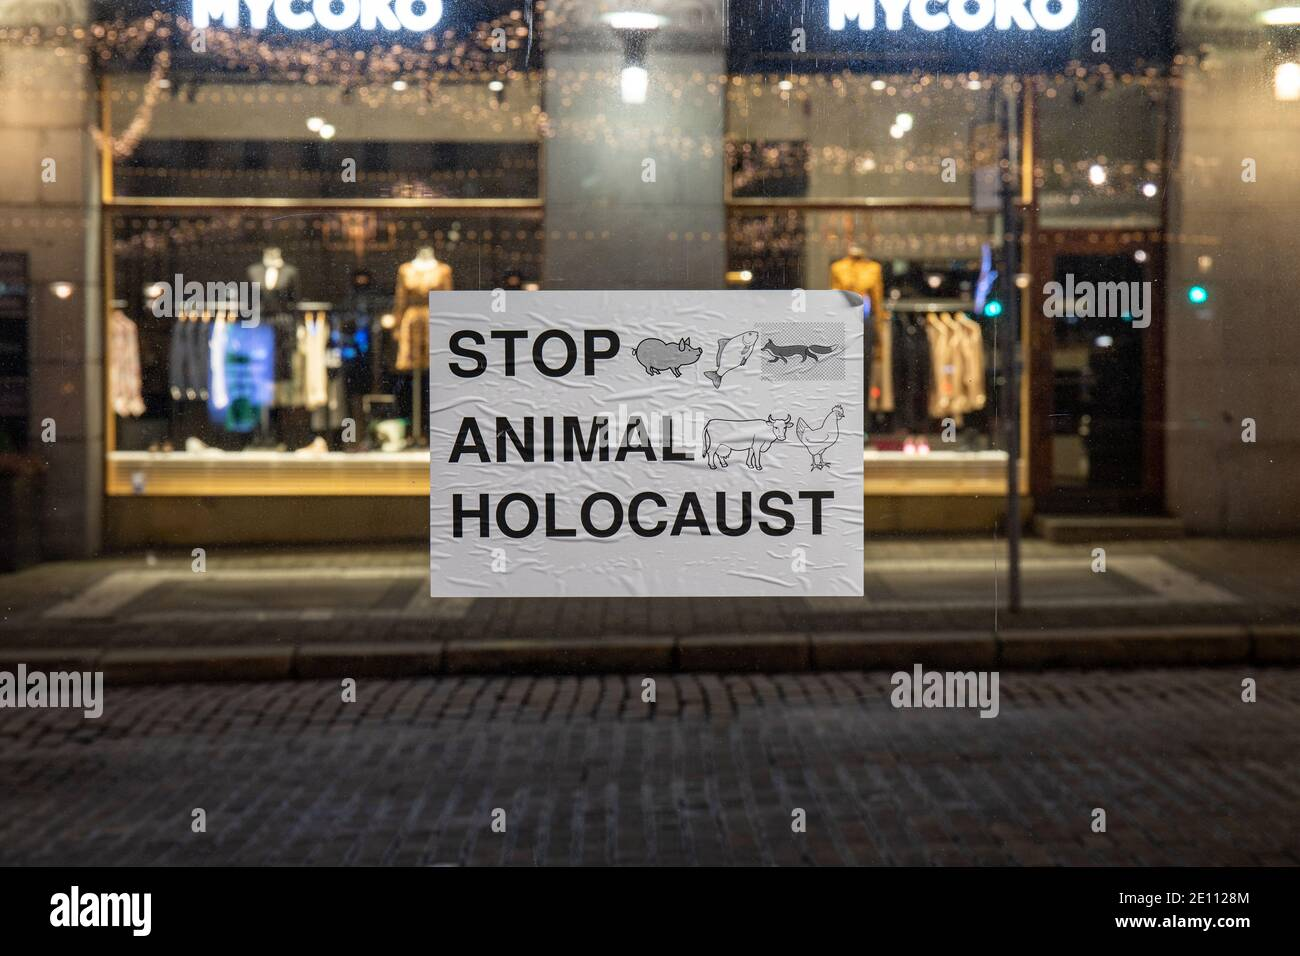 stop-animal-holocaust-animal-liberation-